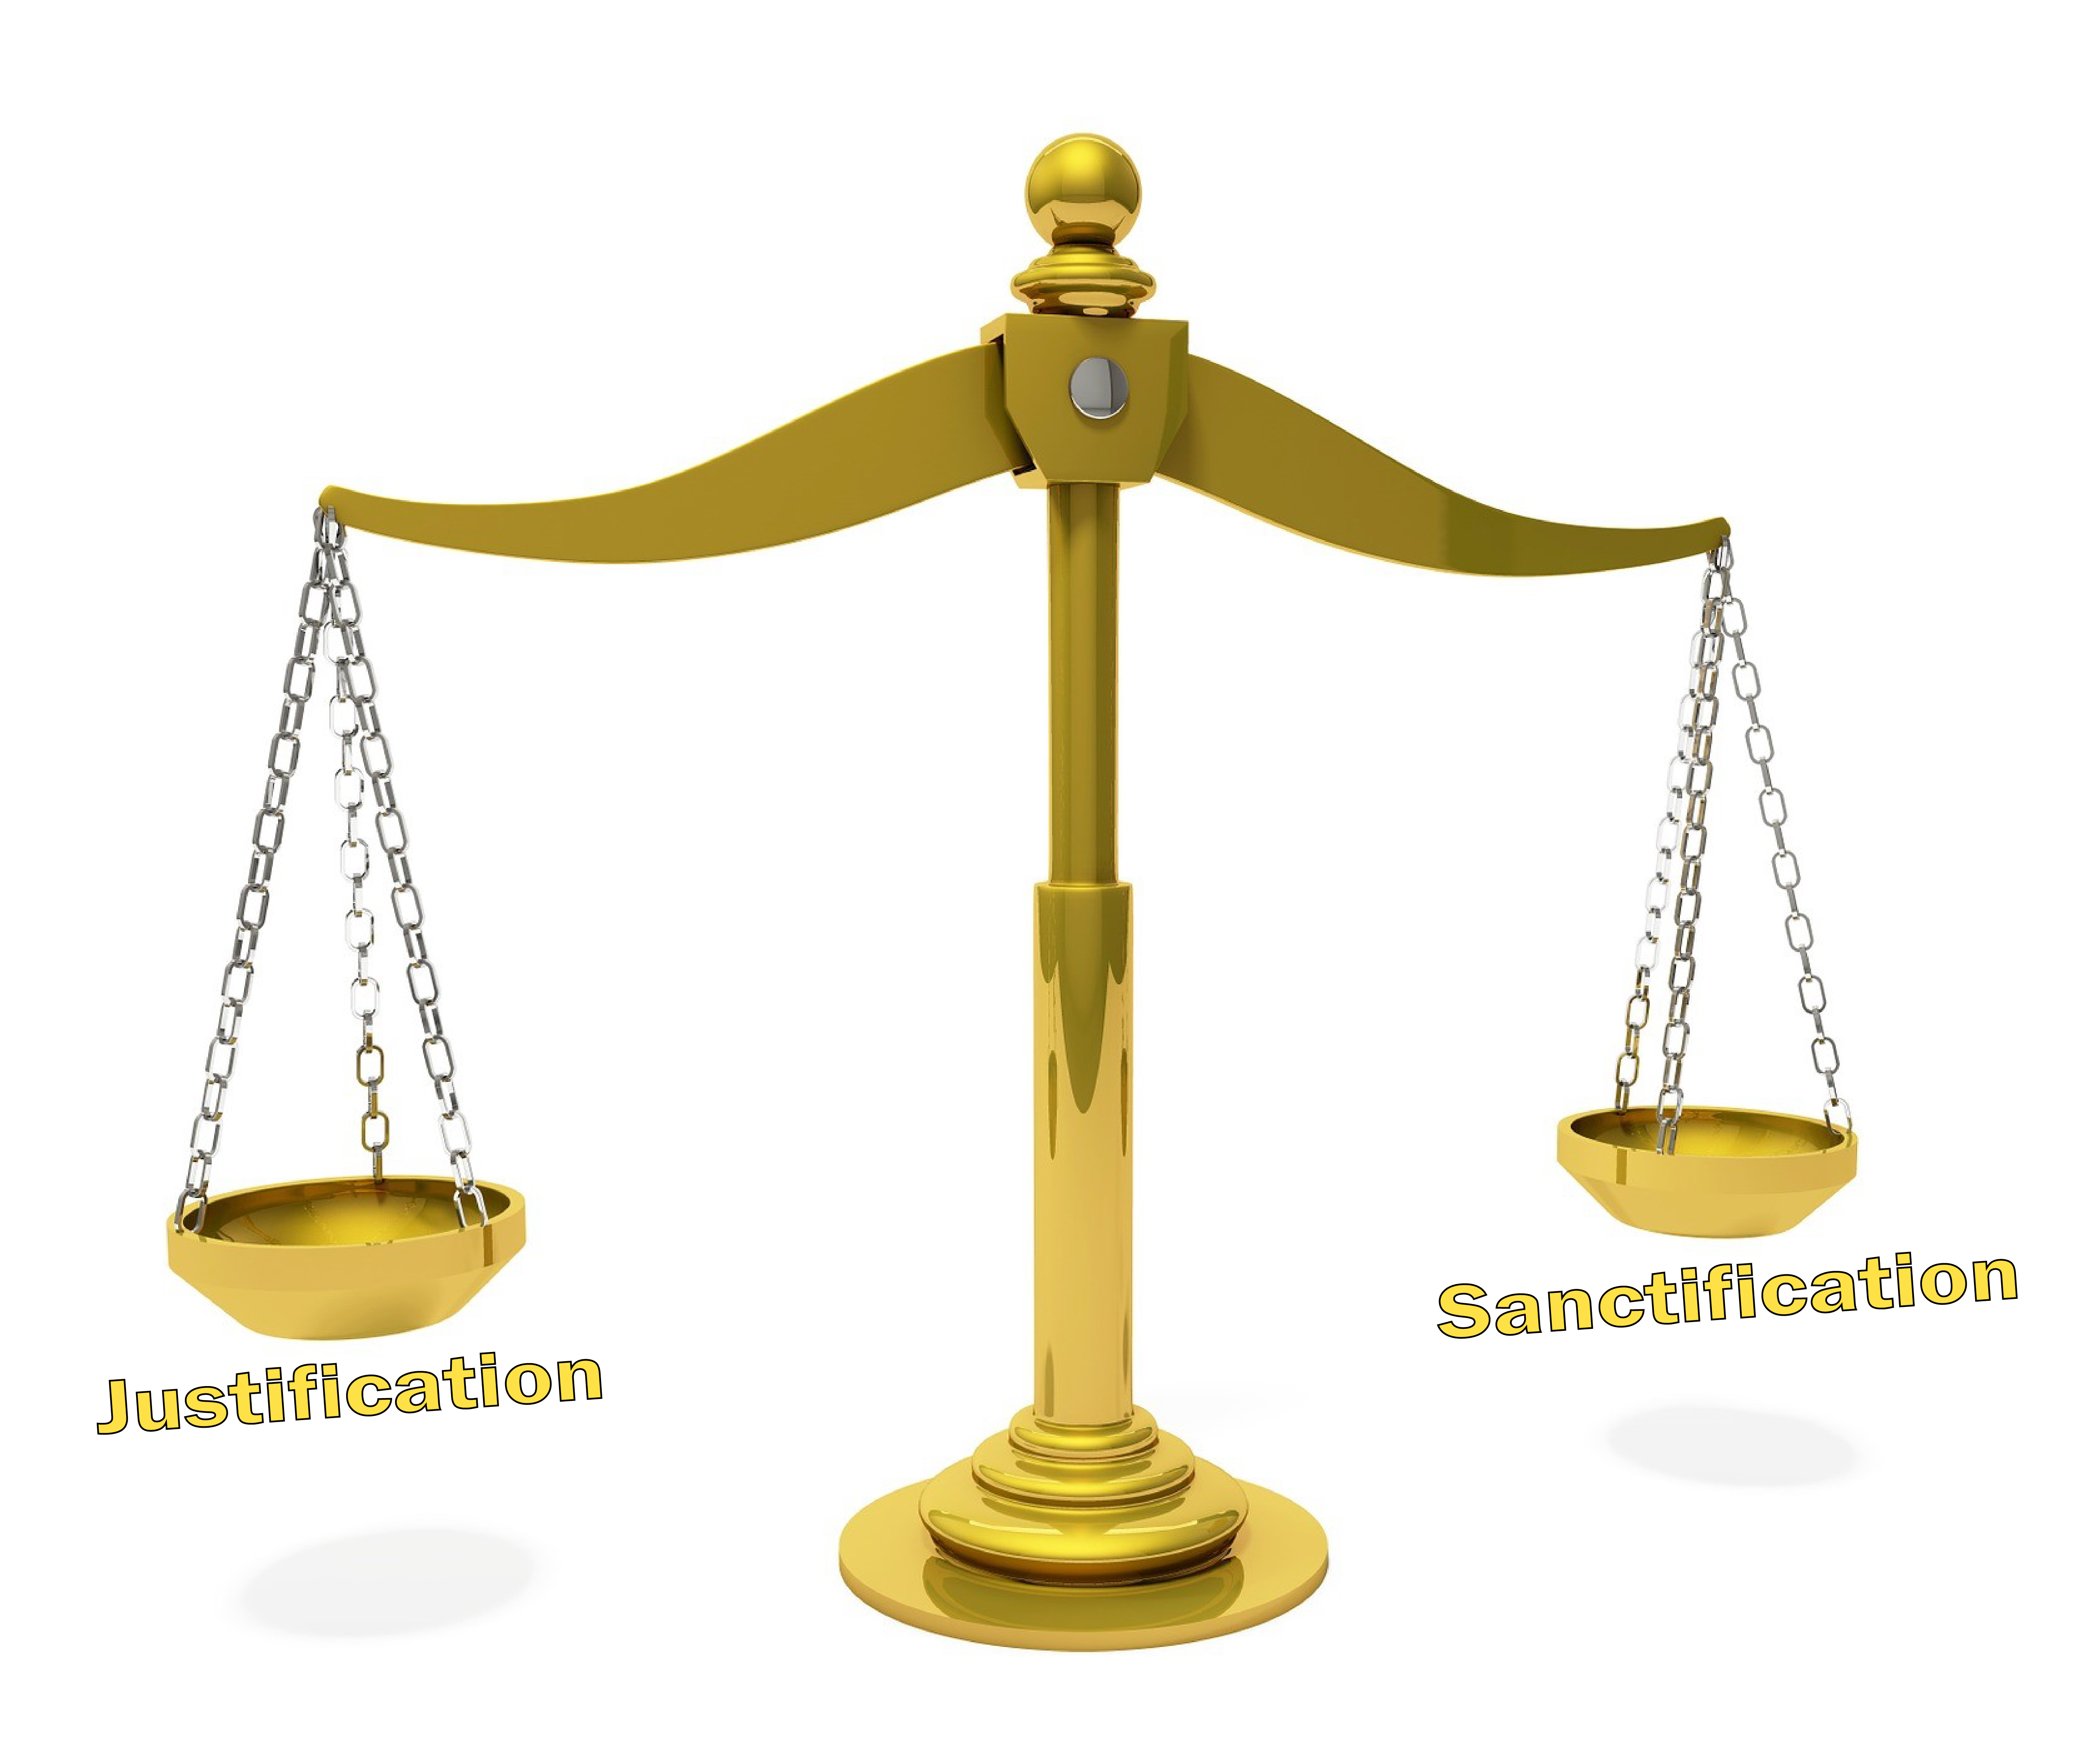 Justification vs Sanctification